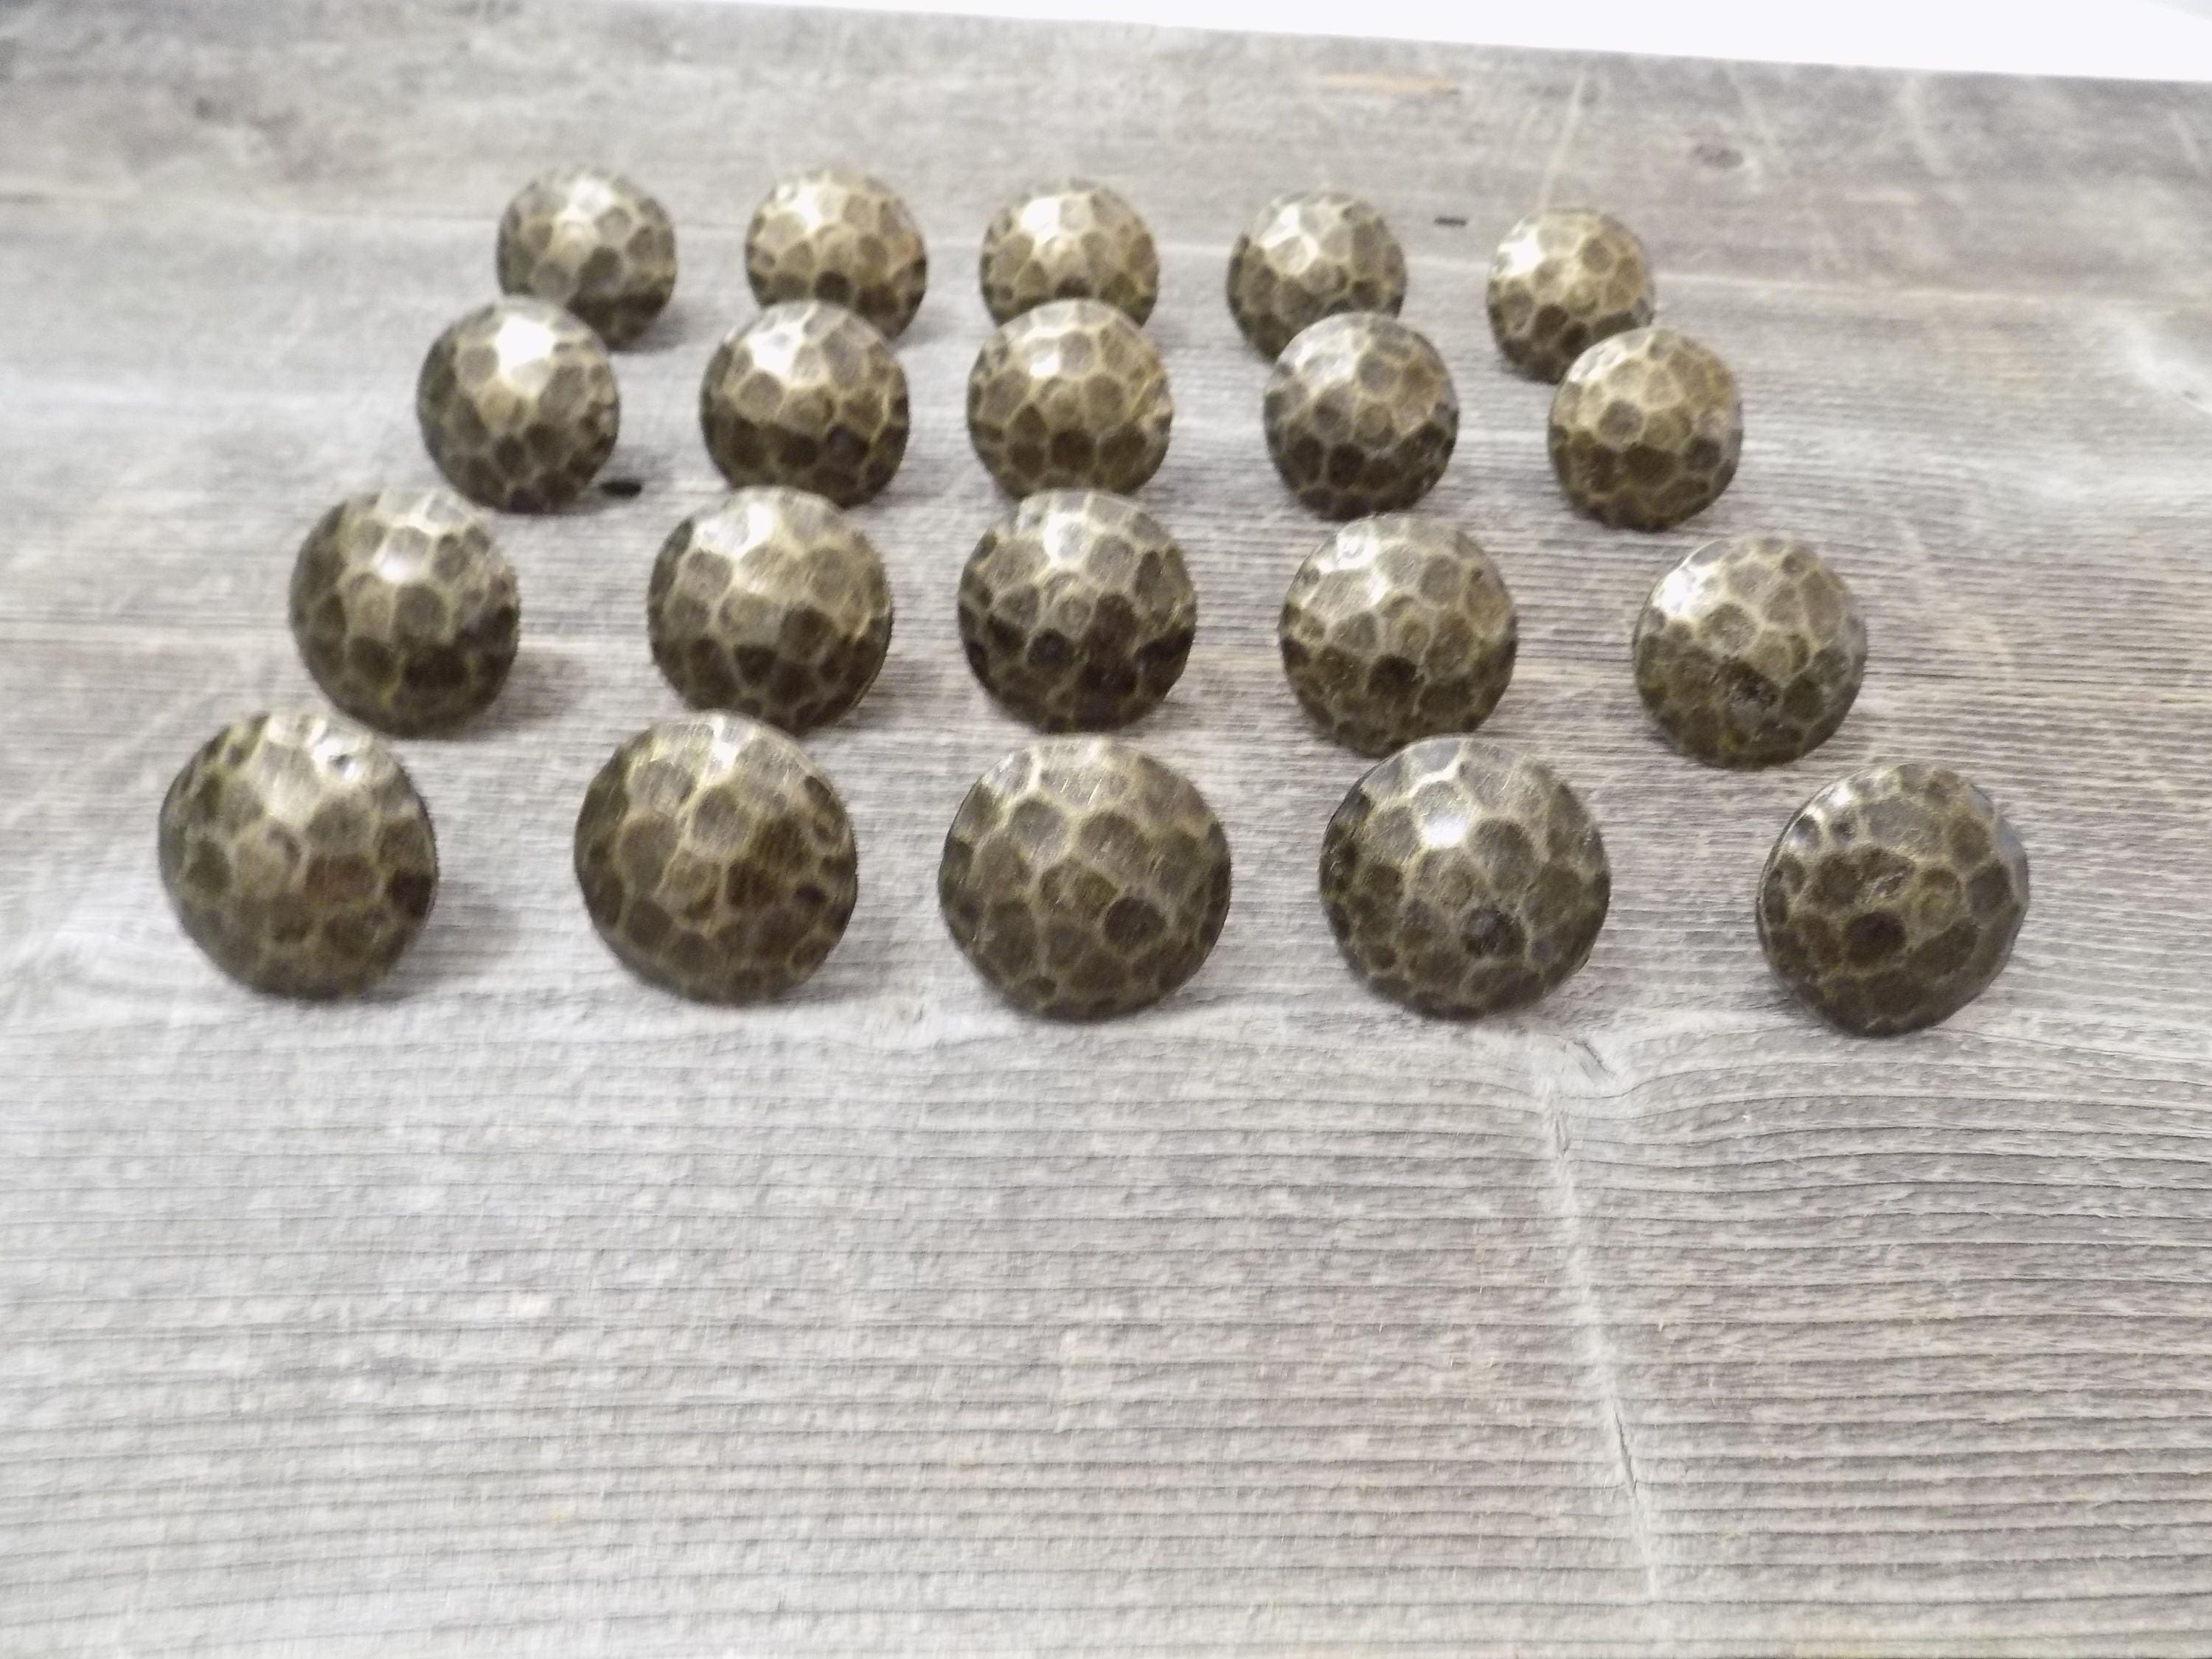 20 Clavos Decorative Nail Heads Rustic Oil Rubbed Worn Brass 1 1/2 ...